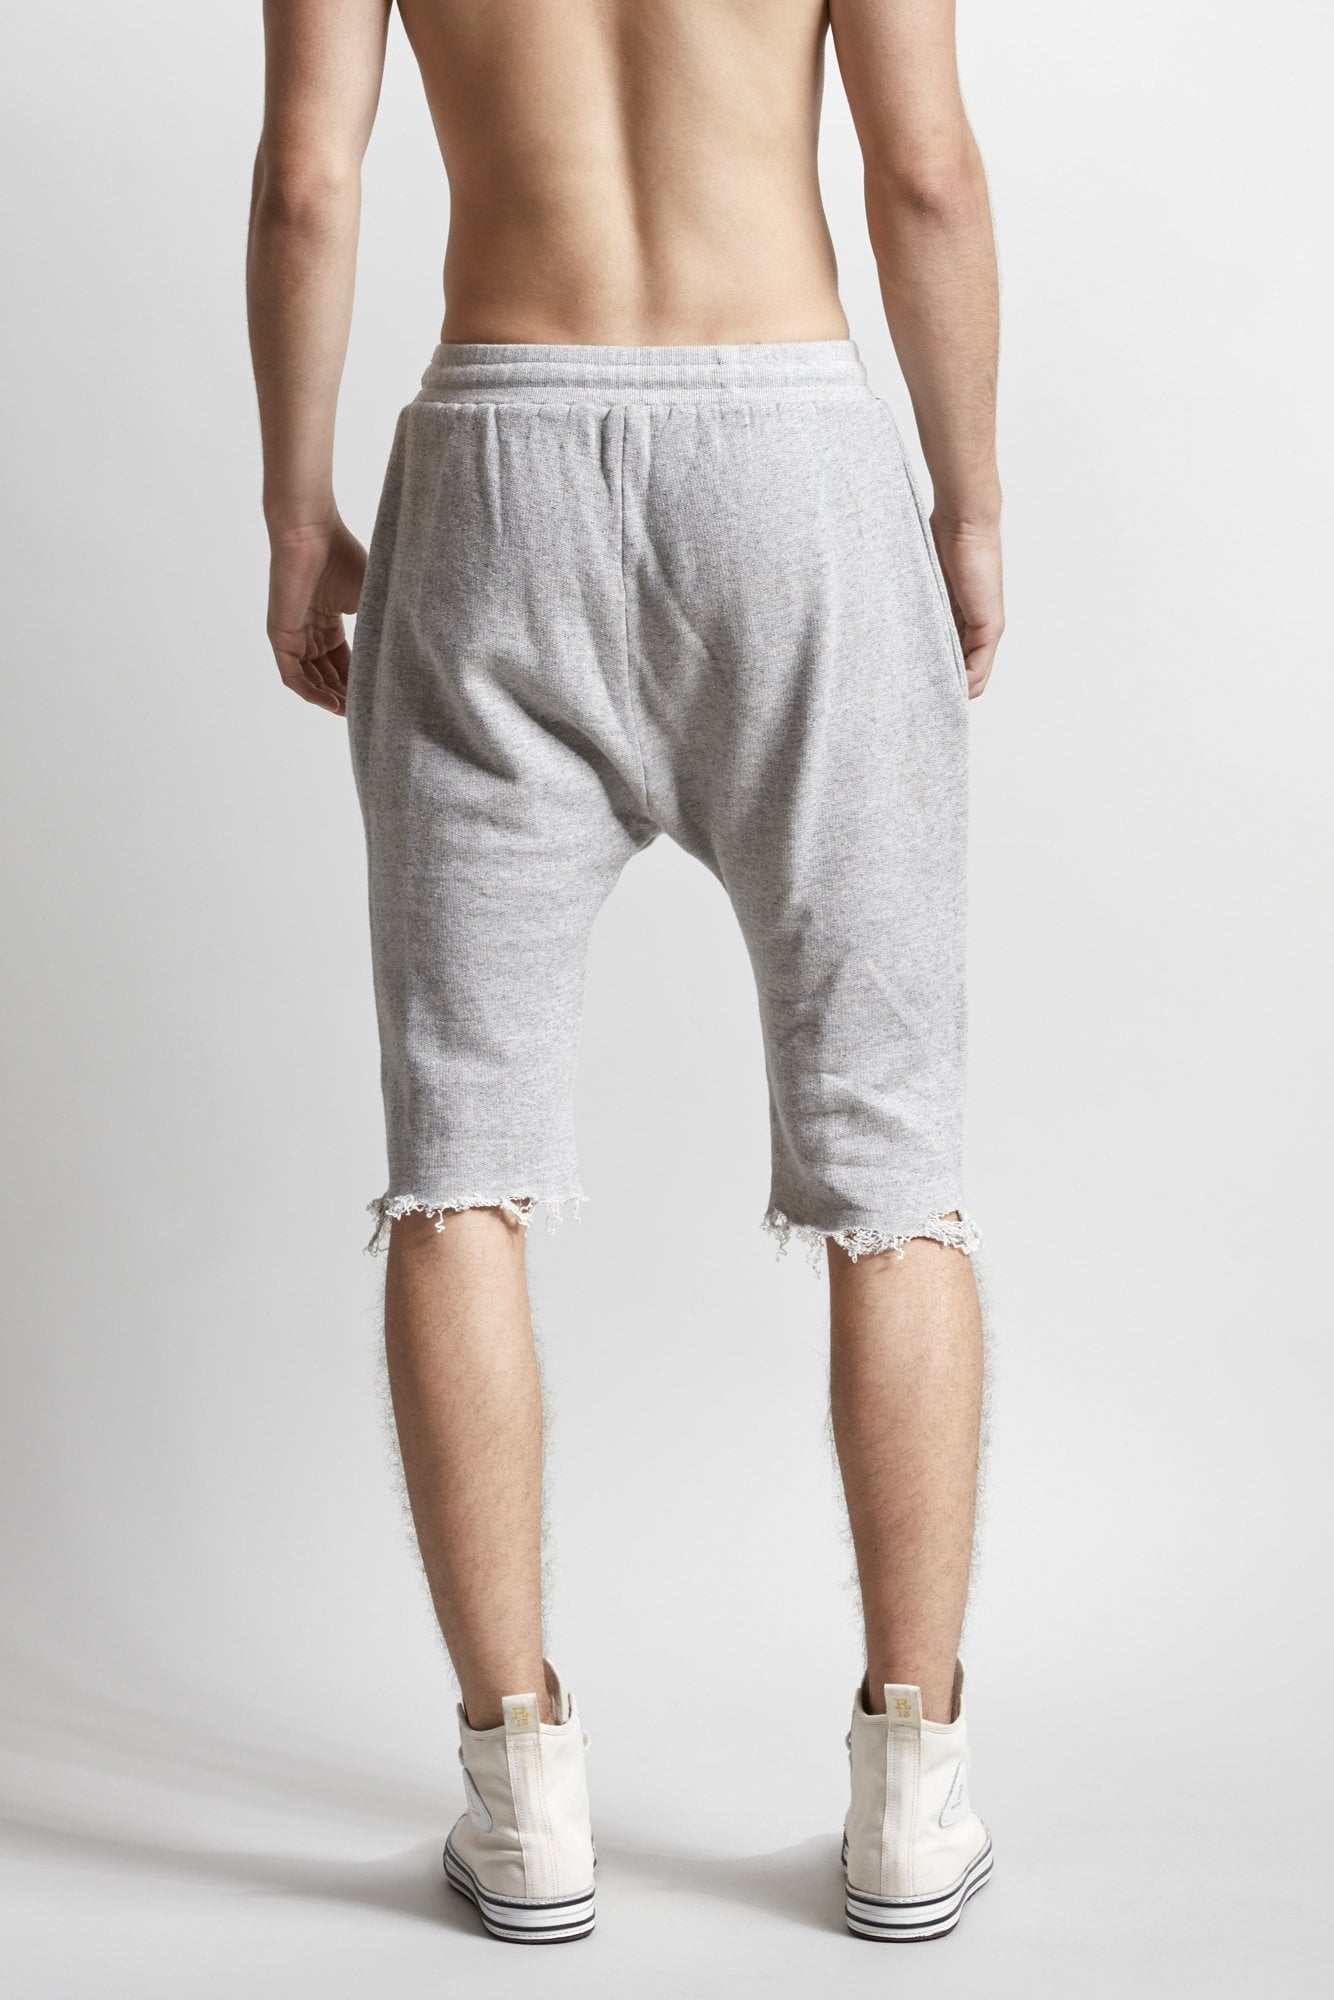 RThirteen Sweatshort - Heather Grey